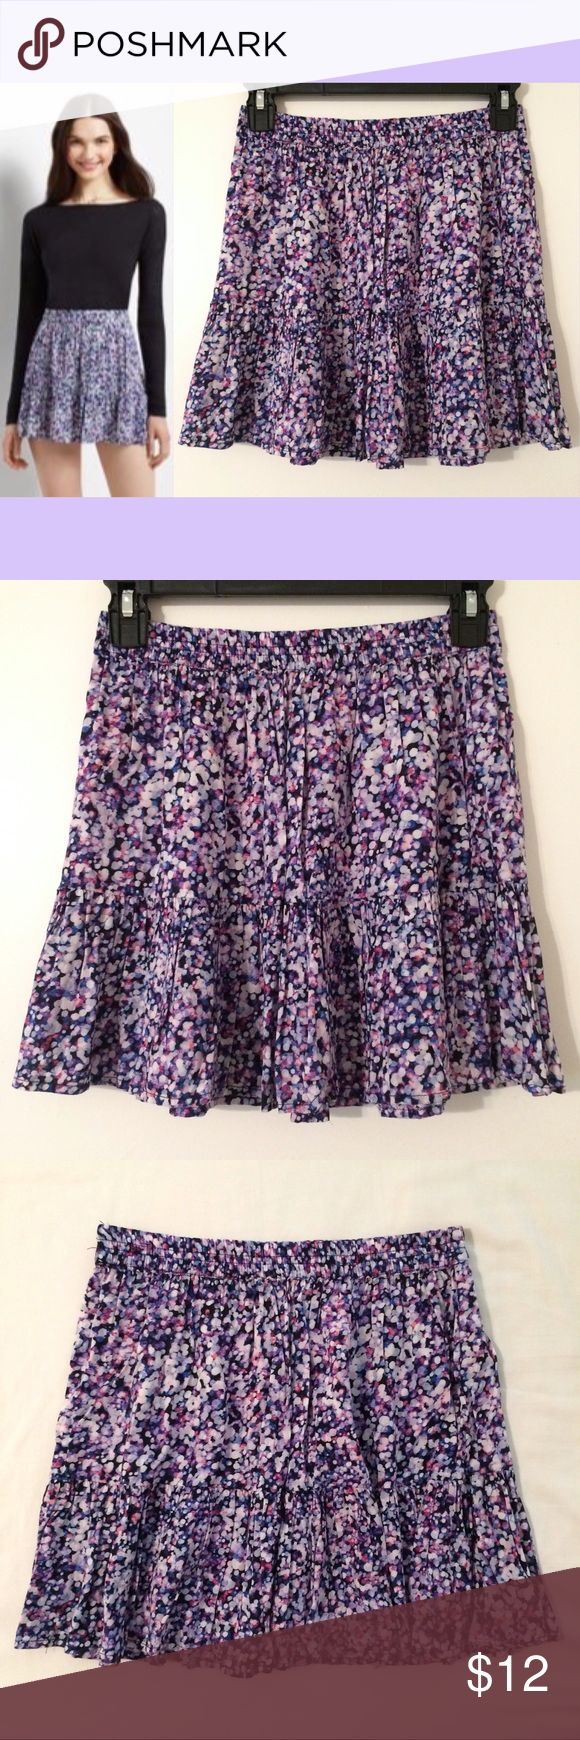 Aeropostale Purple Flippy Peplum Mini Skirt Aeropostale Lorimer NYC Purple Flippy Peplum Mini Skirt Size Medium 100% Rayon Excellent condition!  Perfect for spring or summer!🌸 Aeropostale Skirts Mini